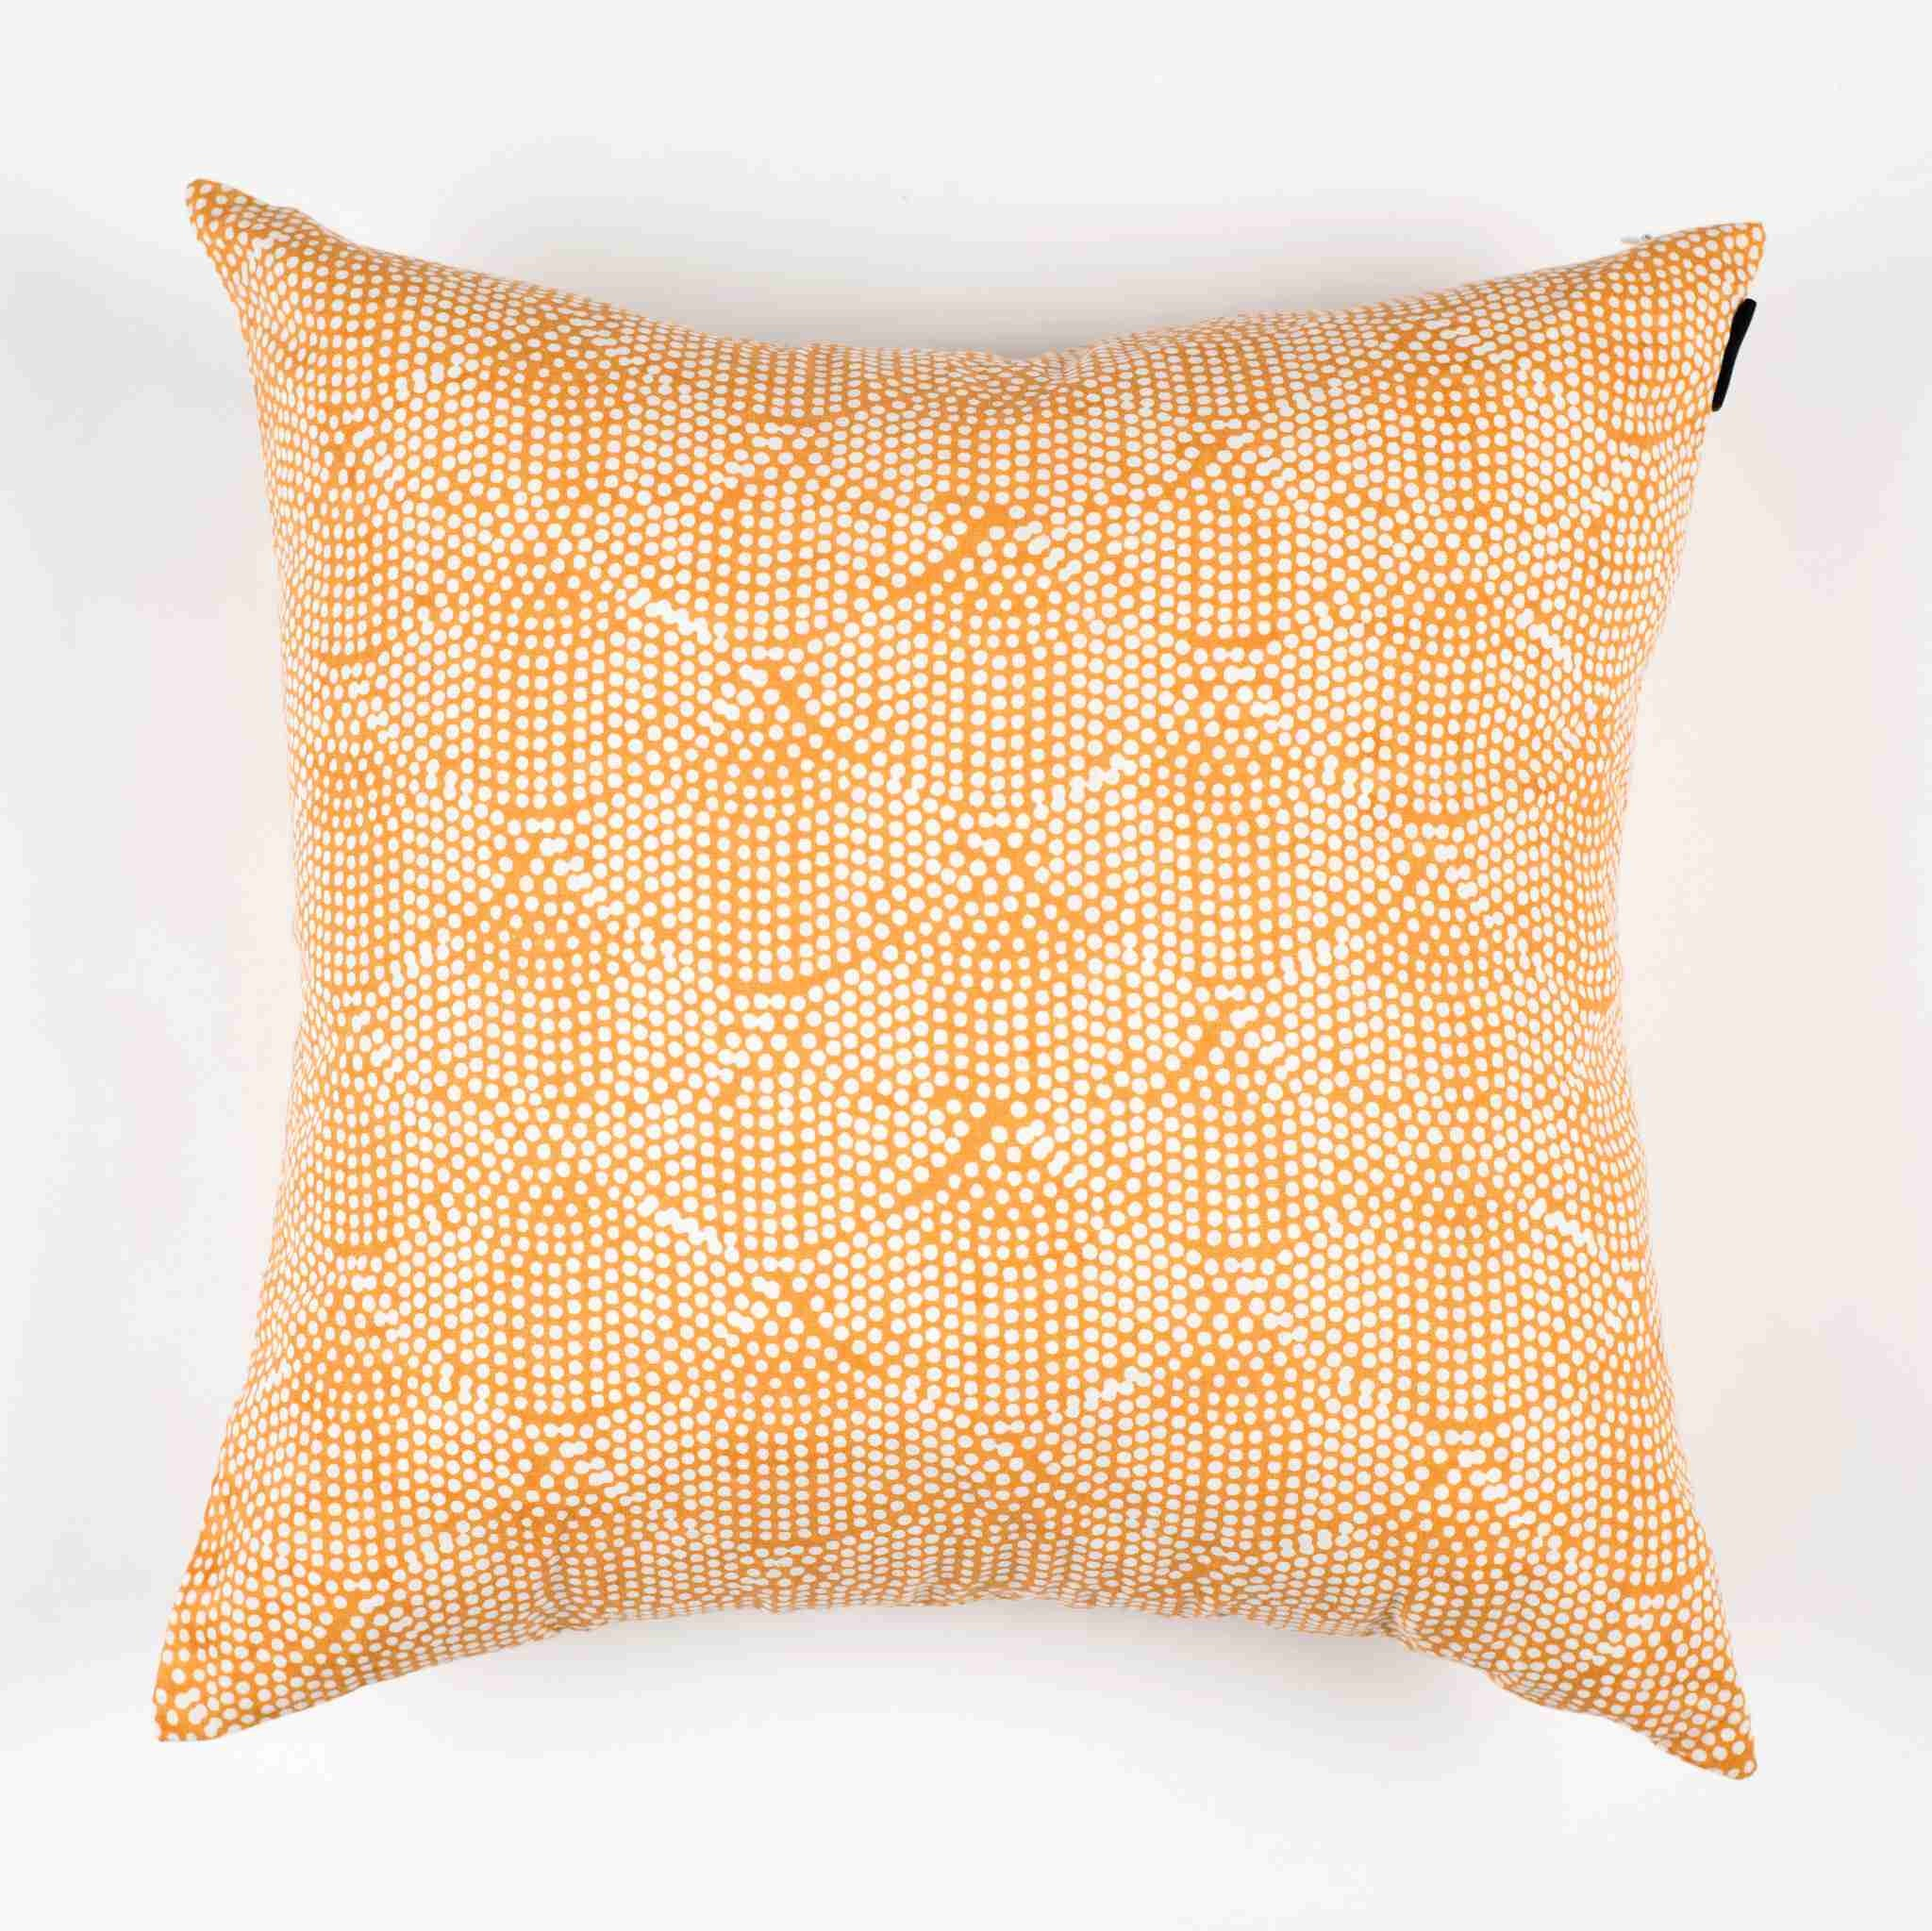 Printed Scallops Pillow Cover – Mustard